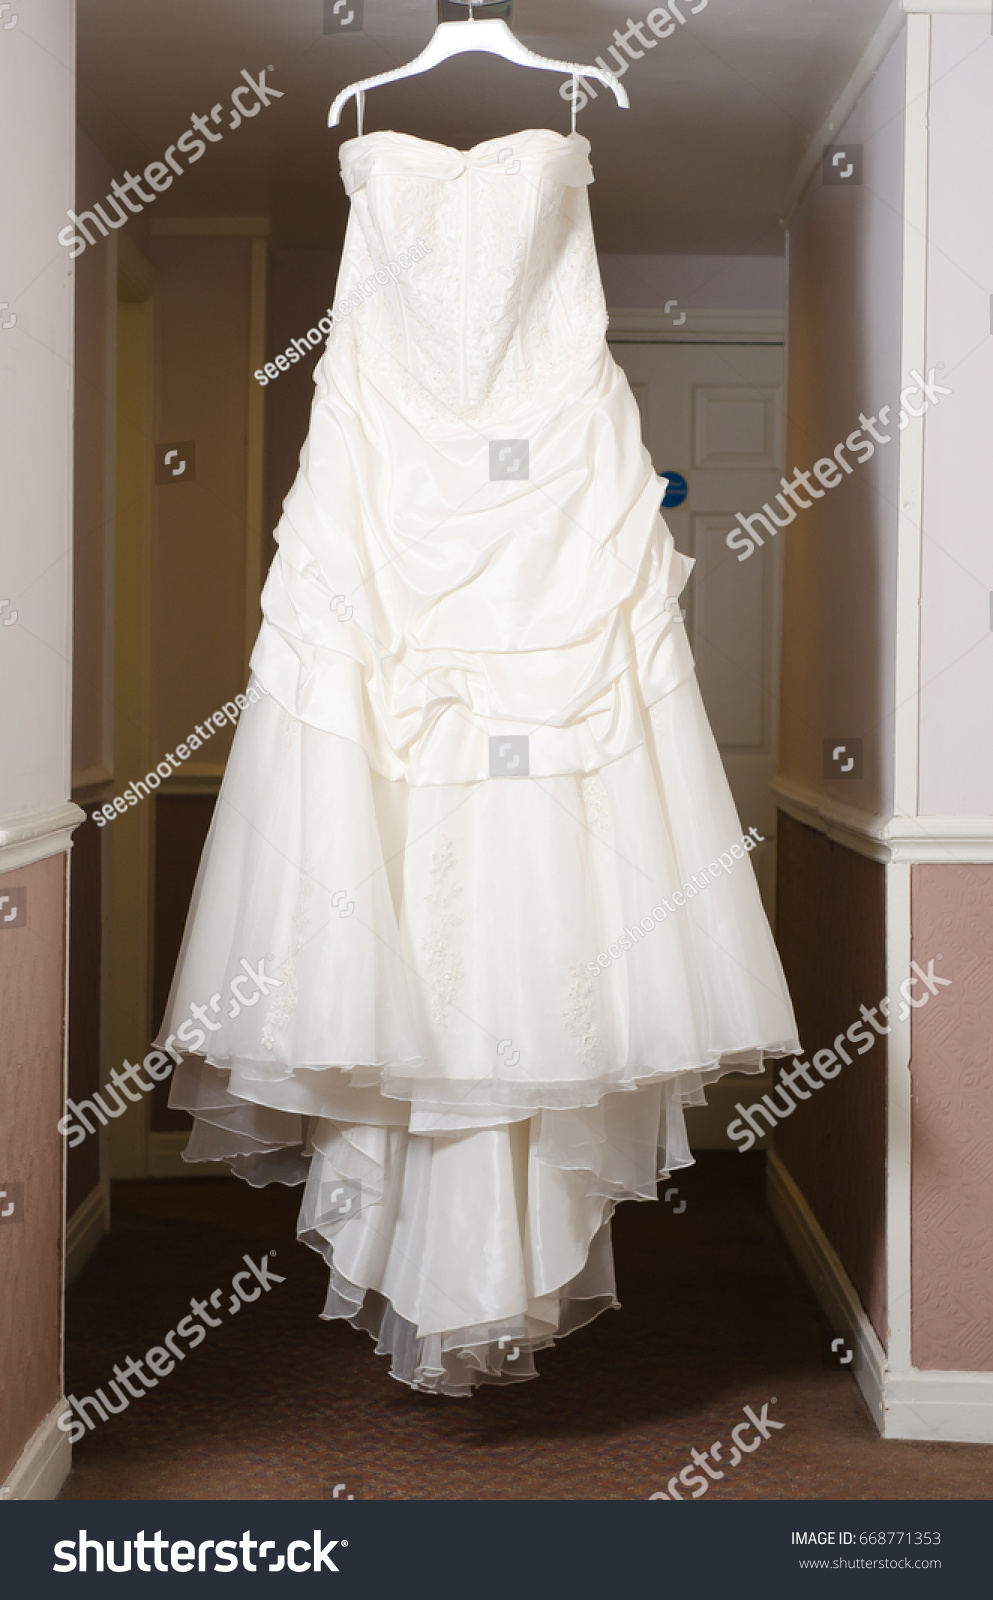 A Beautiful Cream And Clean Wedding Dress Hanging In The Hall Of Hotel Room